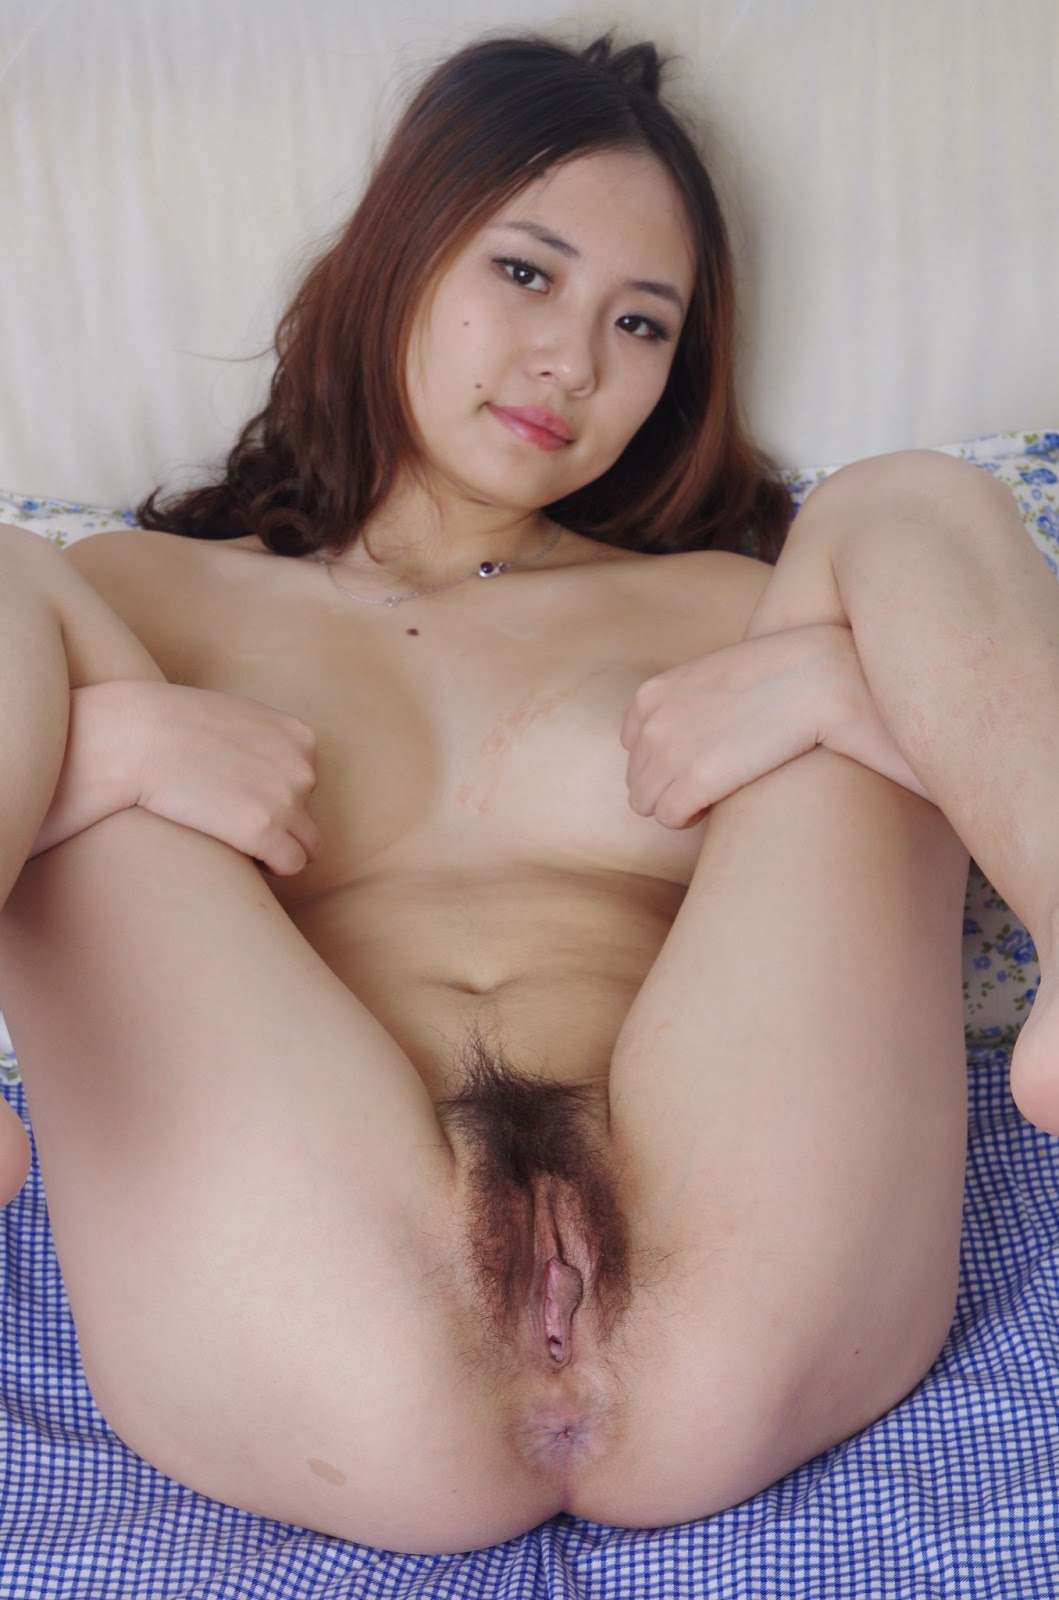 Asian chicks nude pics